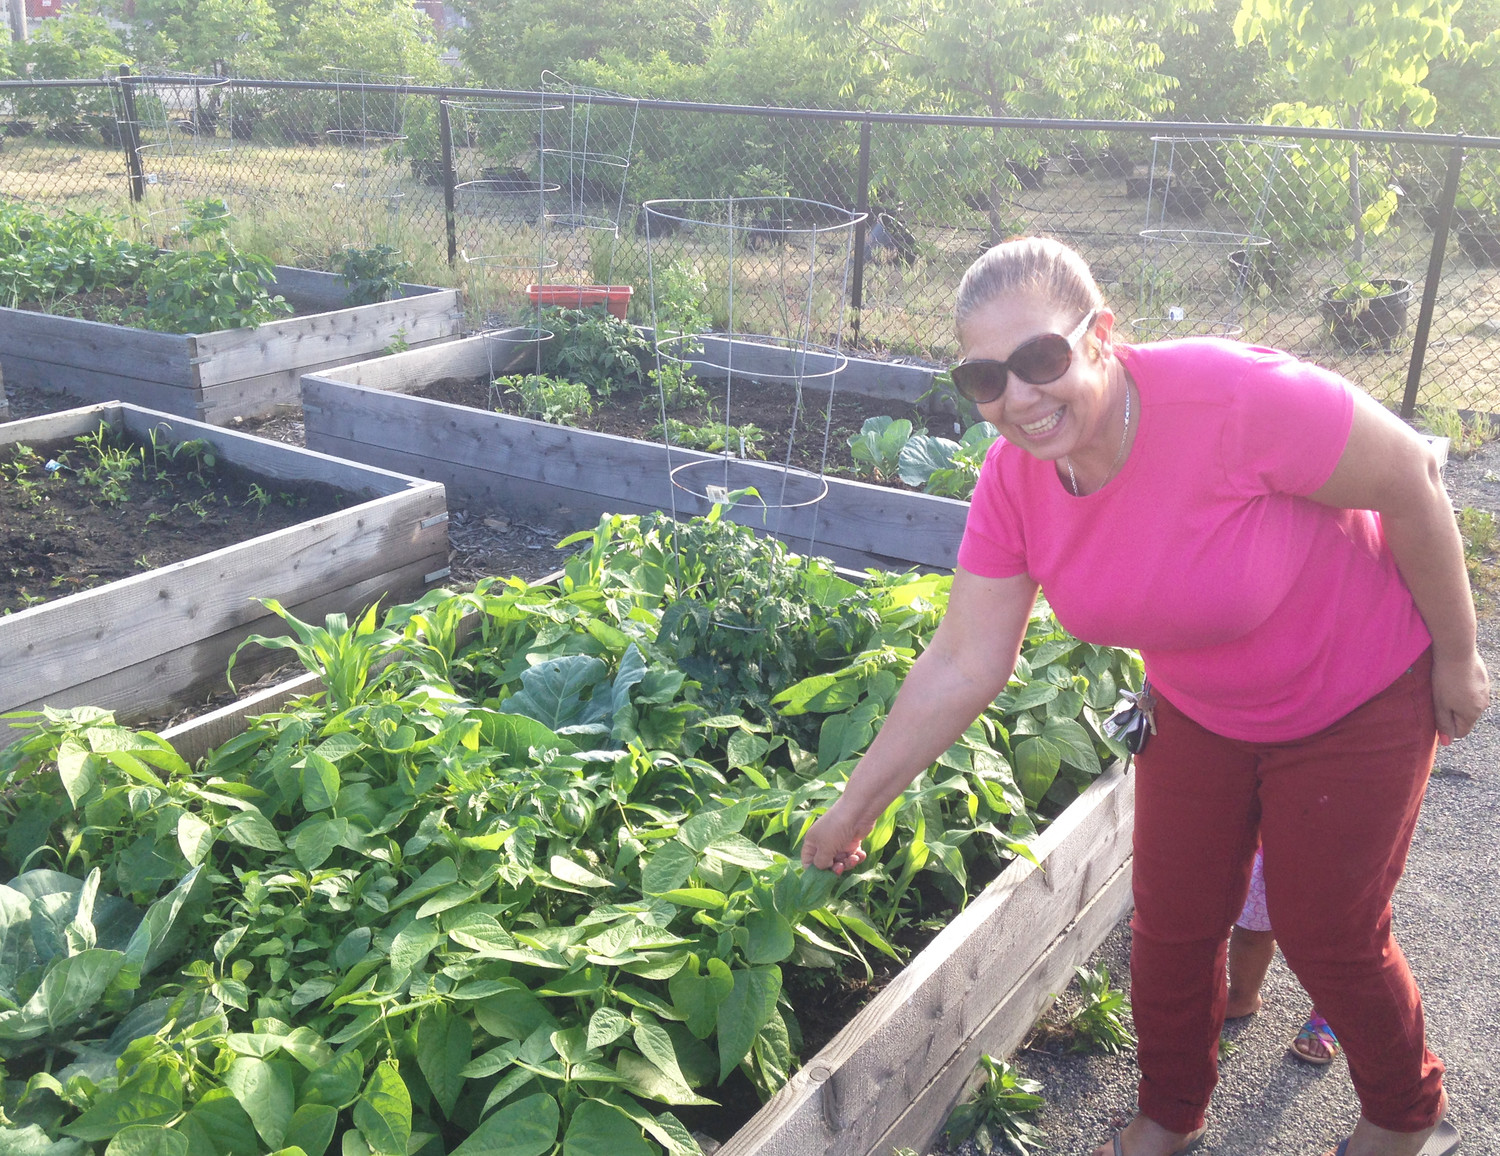 A tenant proudly displays her bountiful raised growing bed of vegetables as part of the Sankofa Initiative.